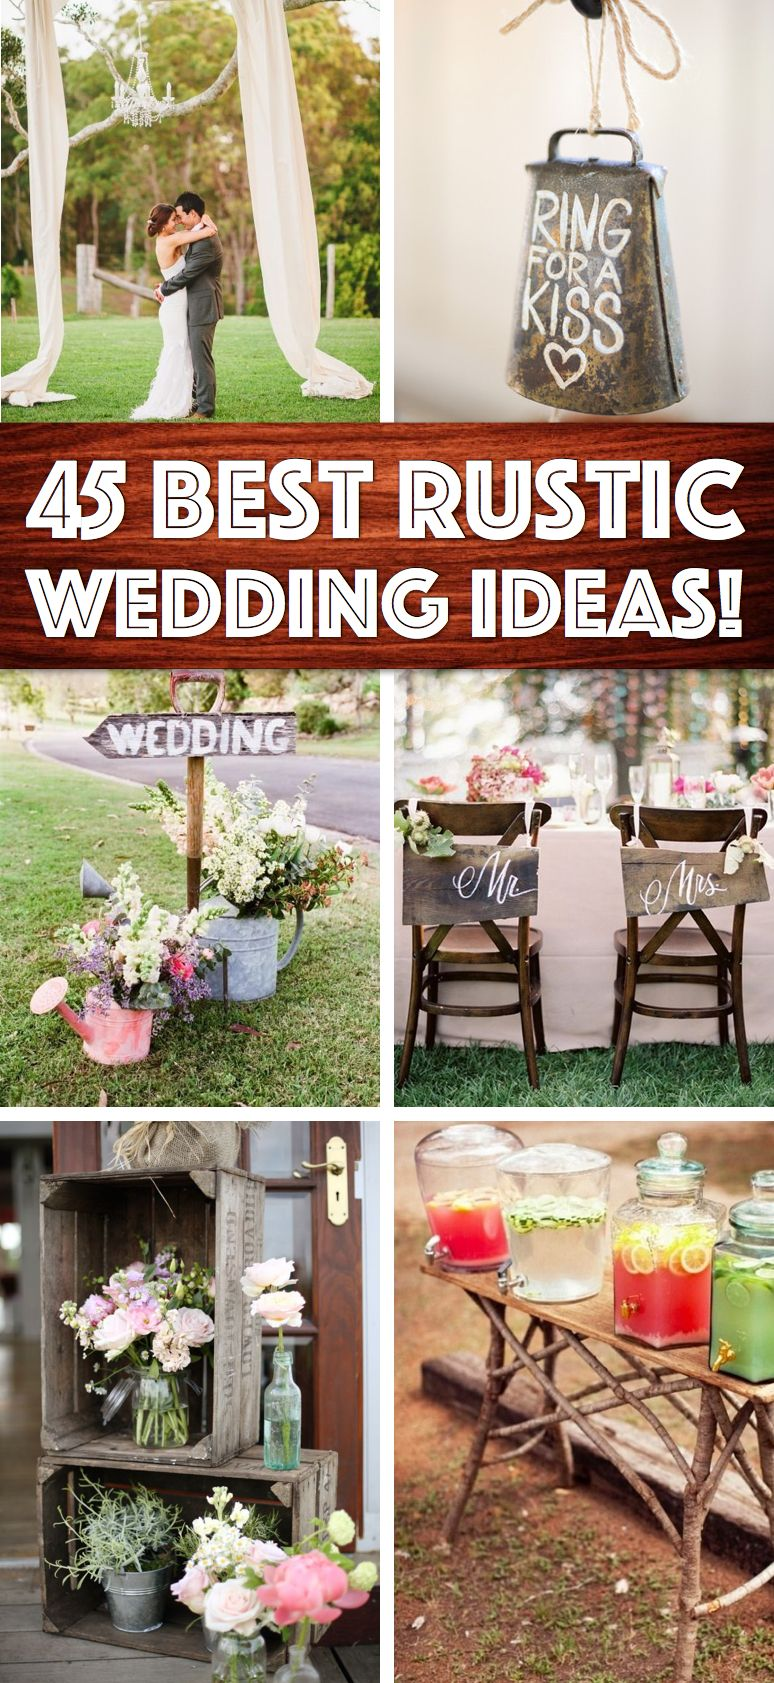 Wedding ideas rustic theme  Shine On Your Wedding Day With These BreathTaking Rustic Wedding